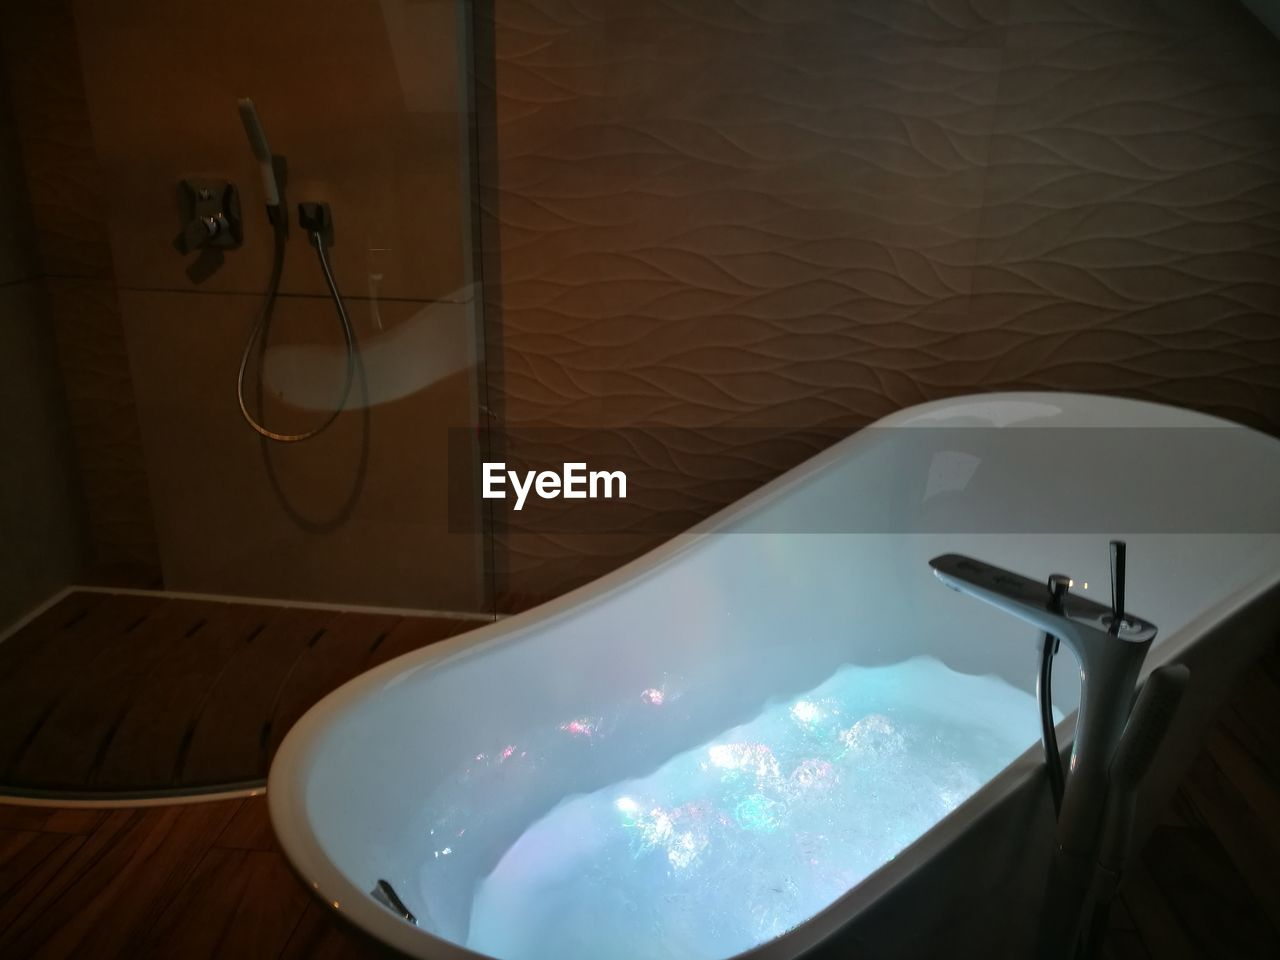 indoors, domestic bathroom, bathroom, bathtub, domestic room, home, no people, absence, high angle view, water, table, nature, illuminated, faucet, home interior, day, hygiene, close-up, sink, luxury, electric lamp